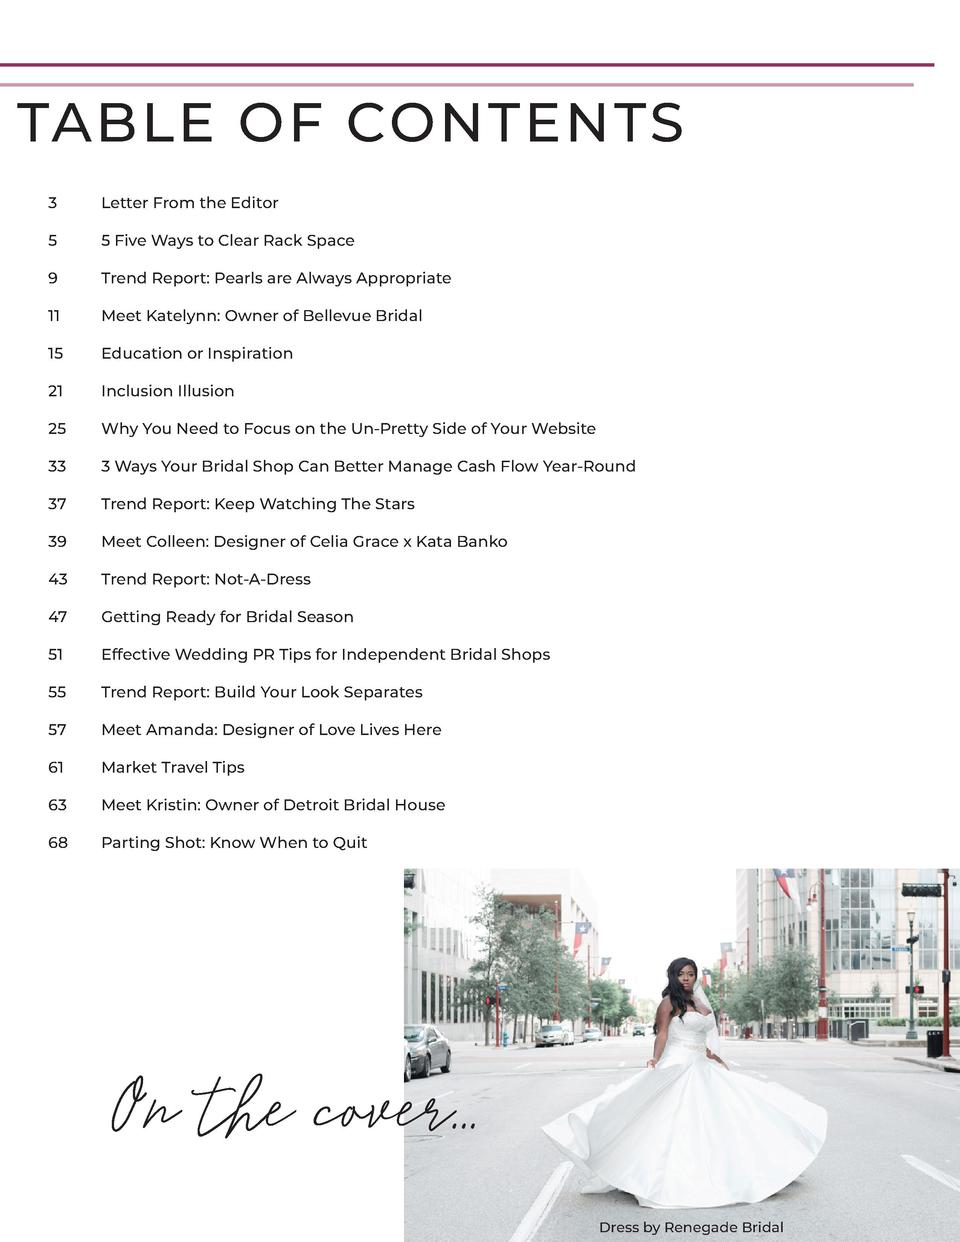 TABLE OF CONTENTS 3  Letter From the Editor  5  5 Five Ways to Clear Rack Space  9  Trend Report  Pearls are Always Approp...